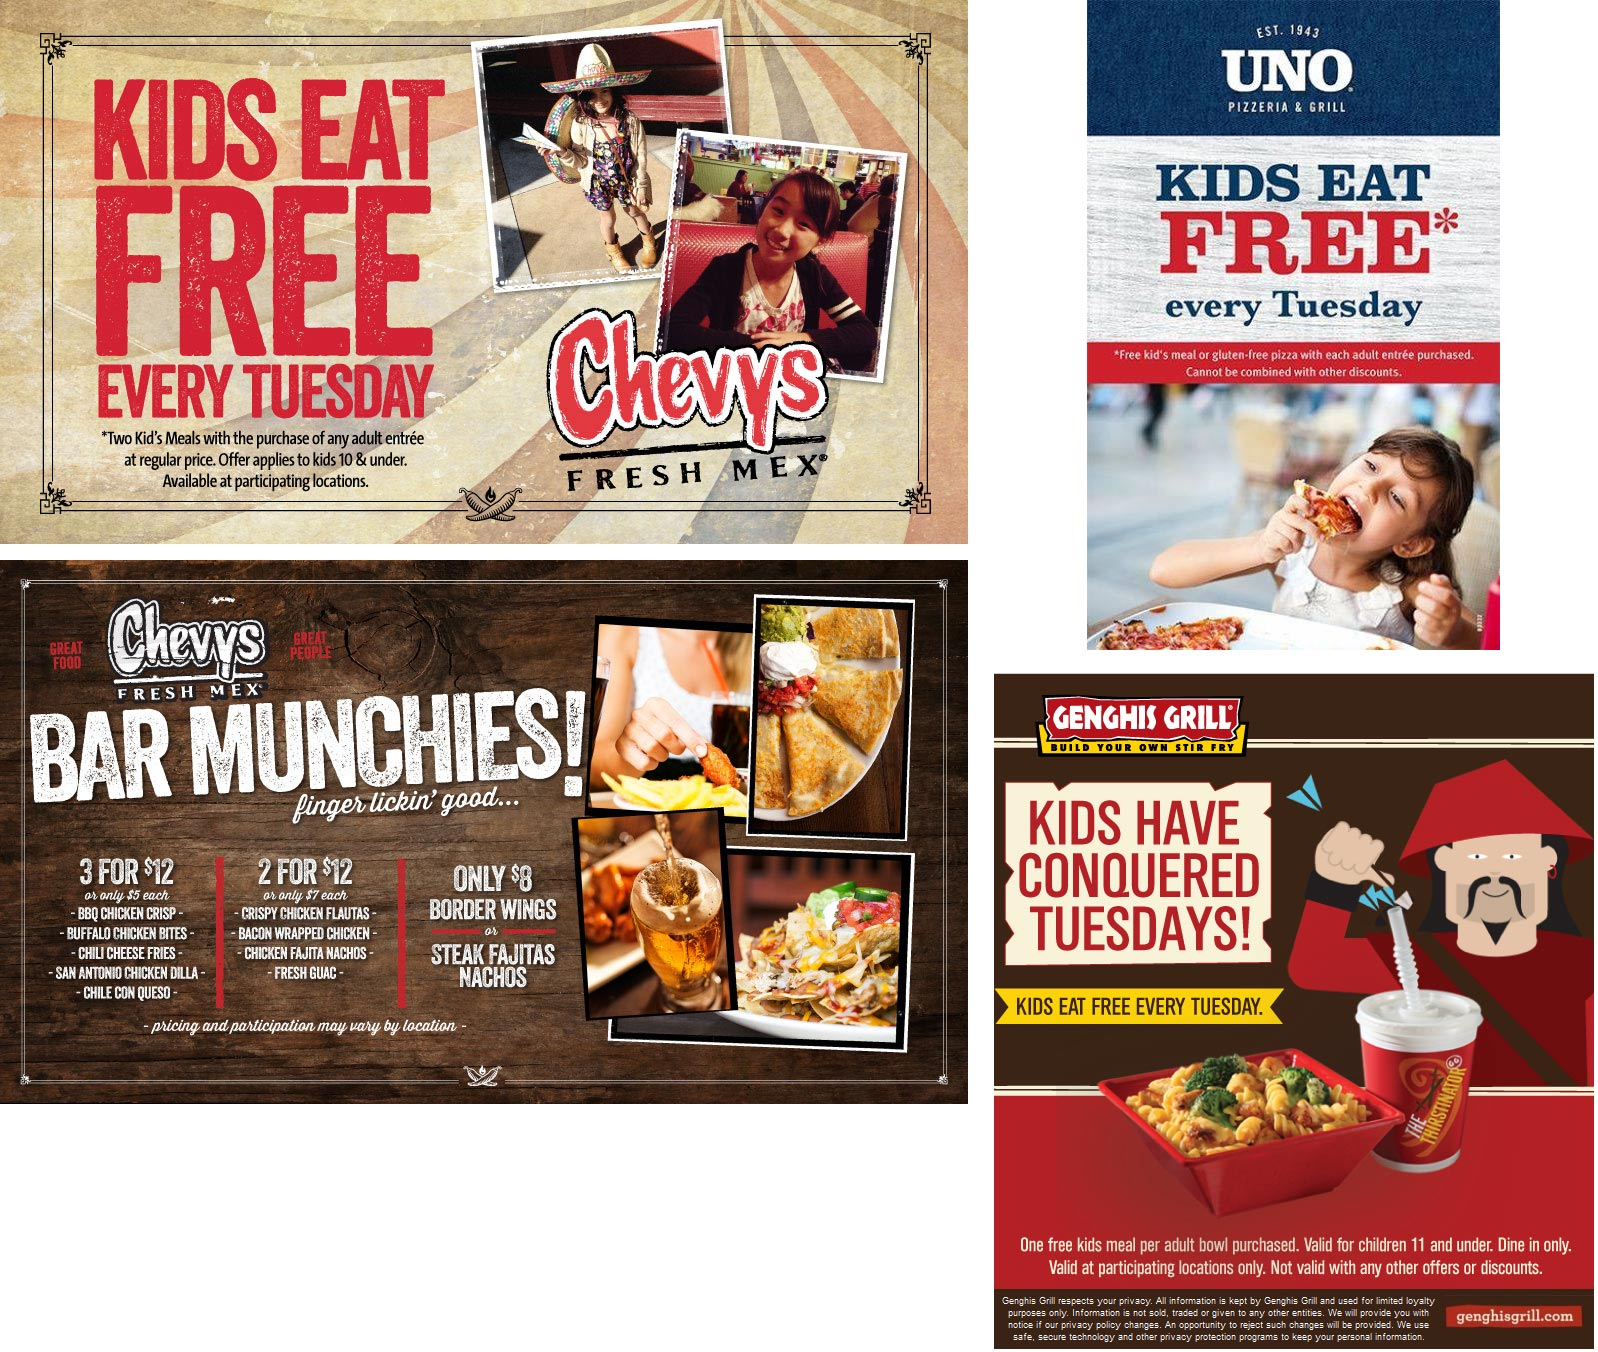 Chevys Fresh Mex Coupon March 2017 Kids eat free today at Chevys Fresh Mex, Genghis Grill & Uno Pizzeria Grill